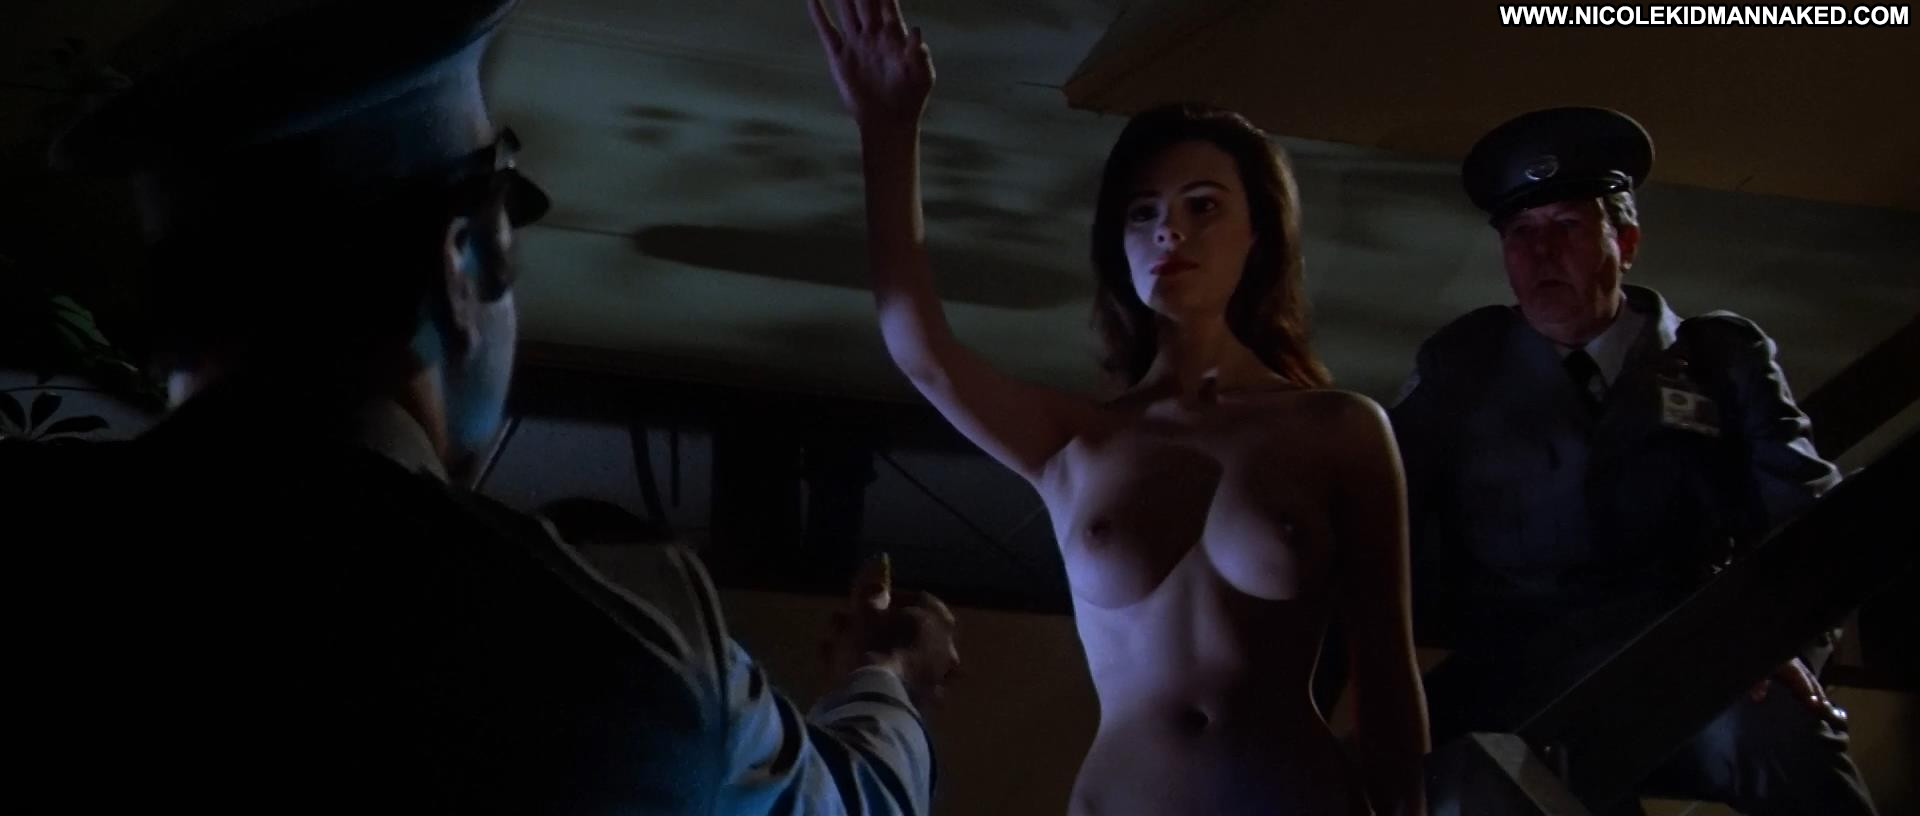 Lifeforce picture nudity johnrieber